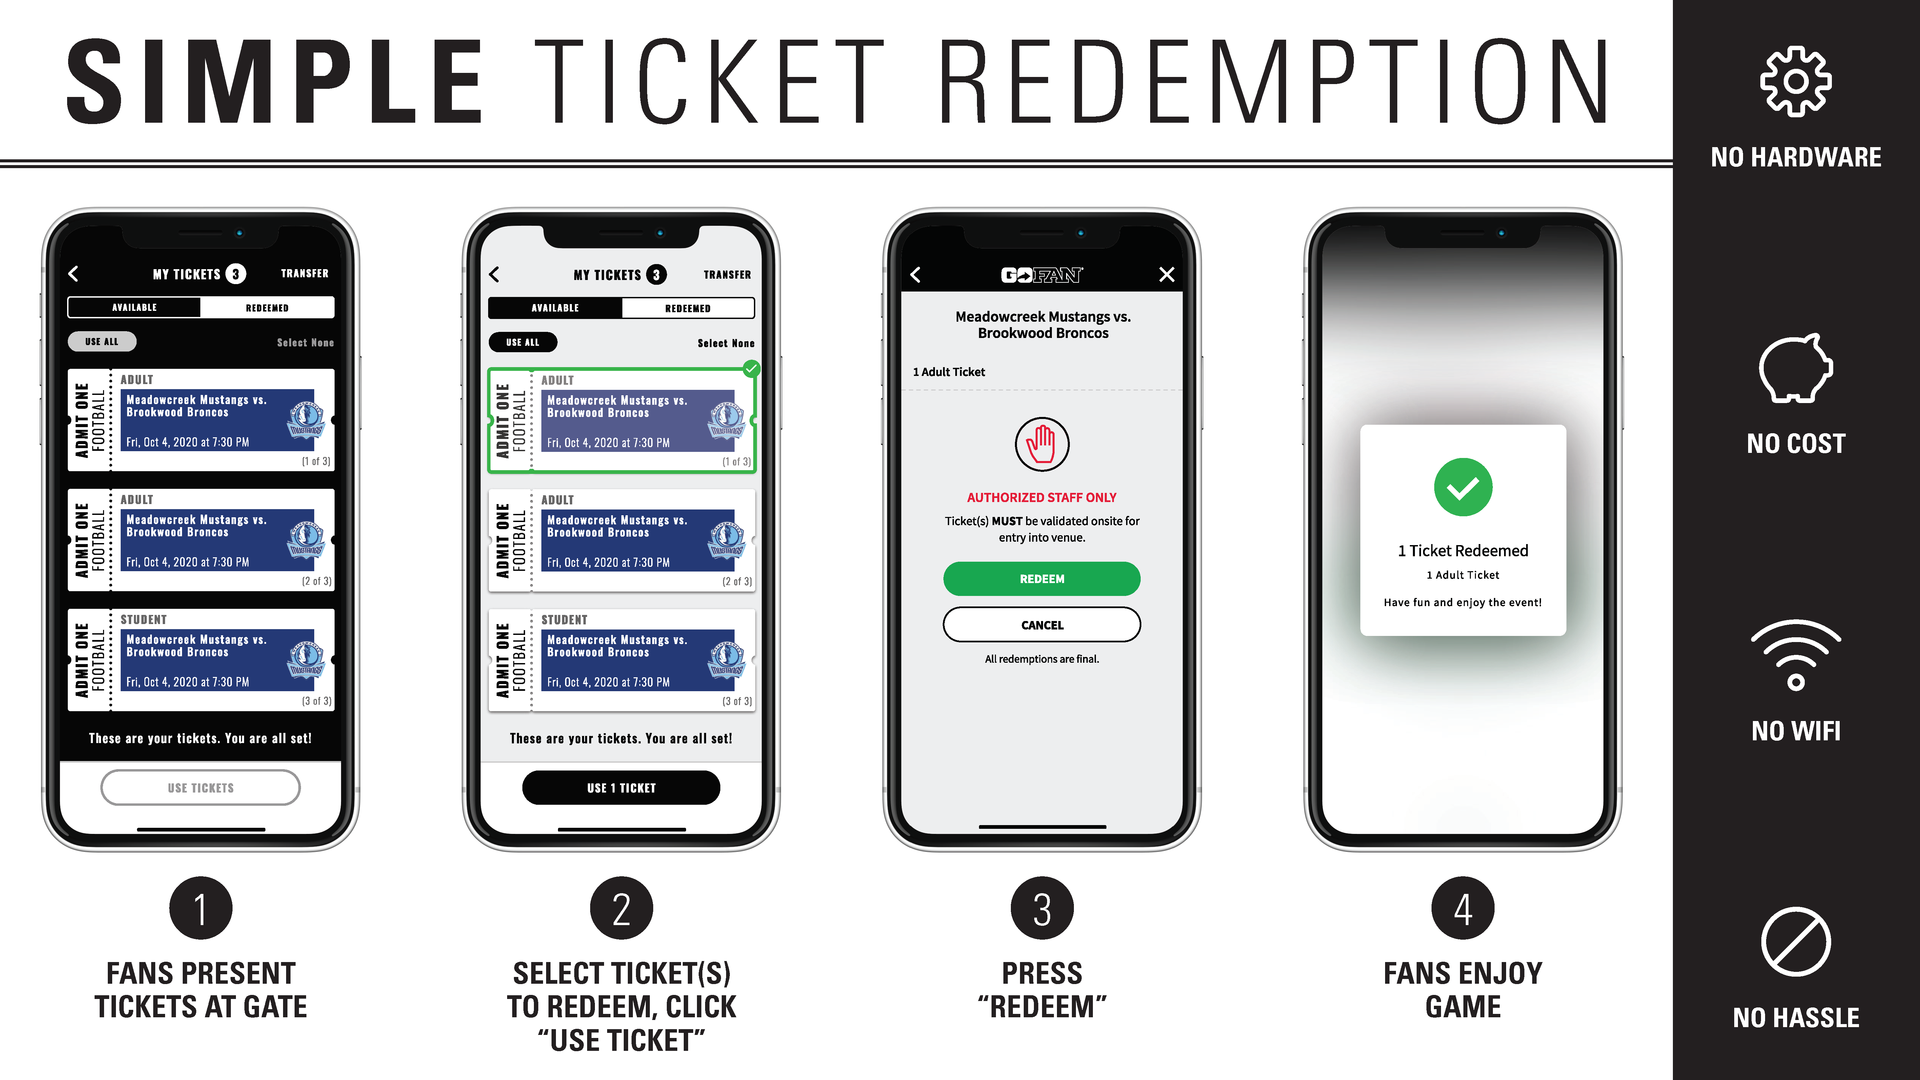 How to redeem tickets?